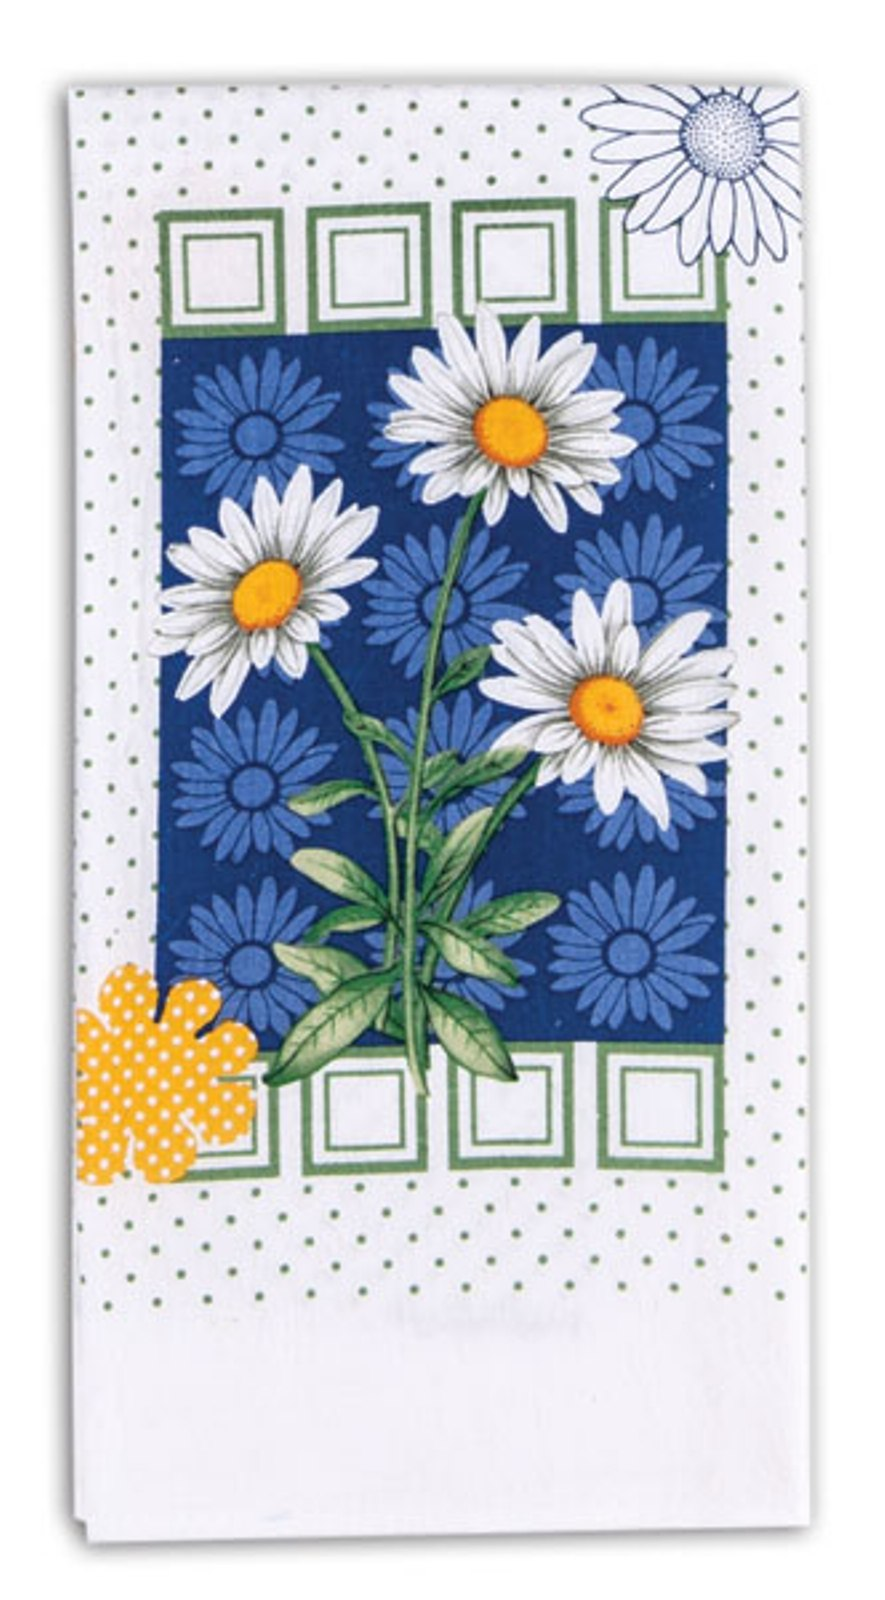 Kay Dee Daisy Dazzle Spring Bouquet Flour Sack 27 Inch Kitchen Dish Towel Kay Dee at Sears.com